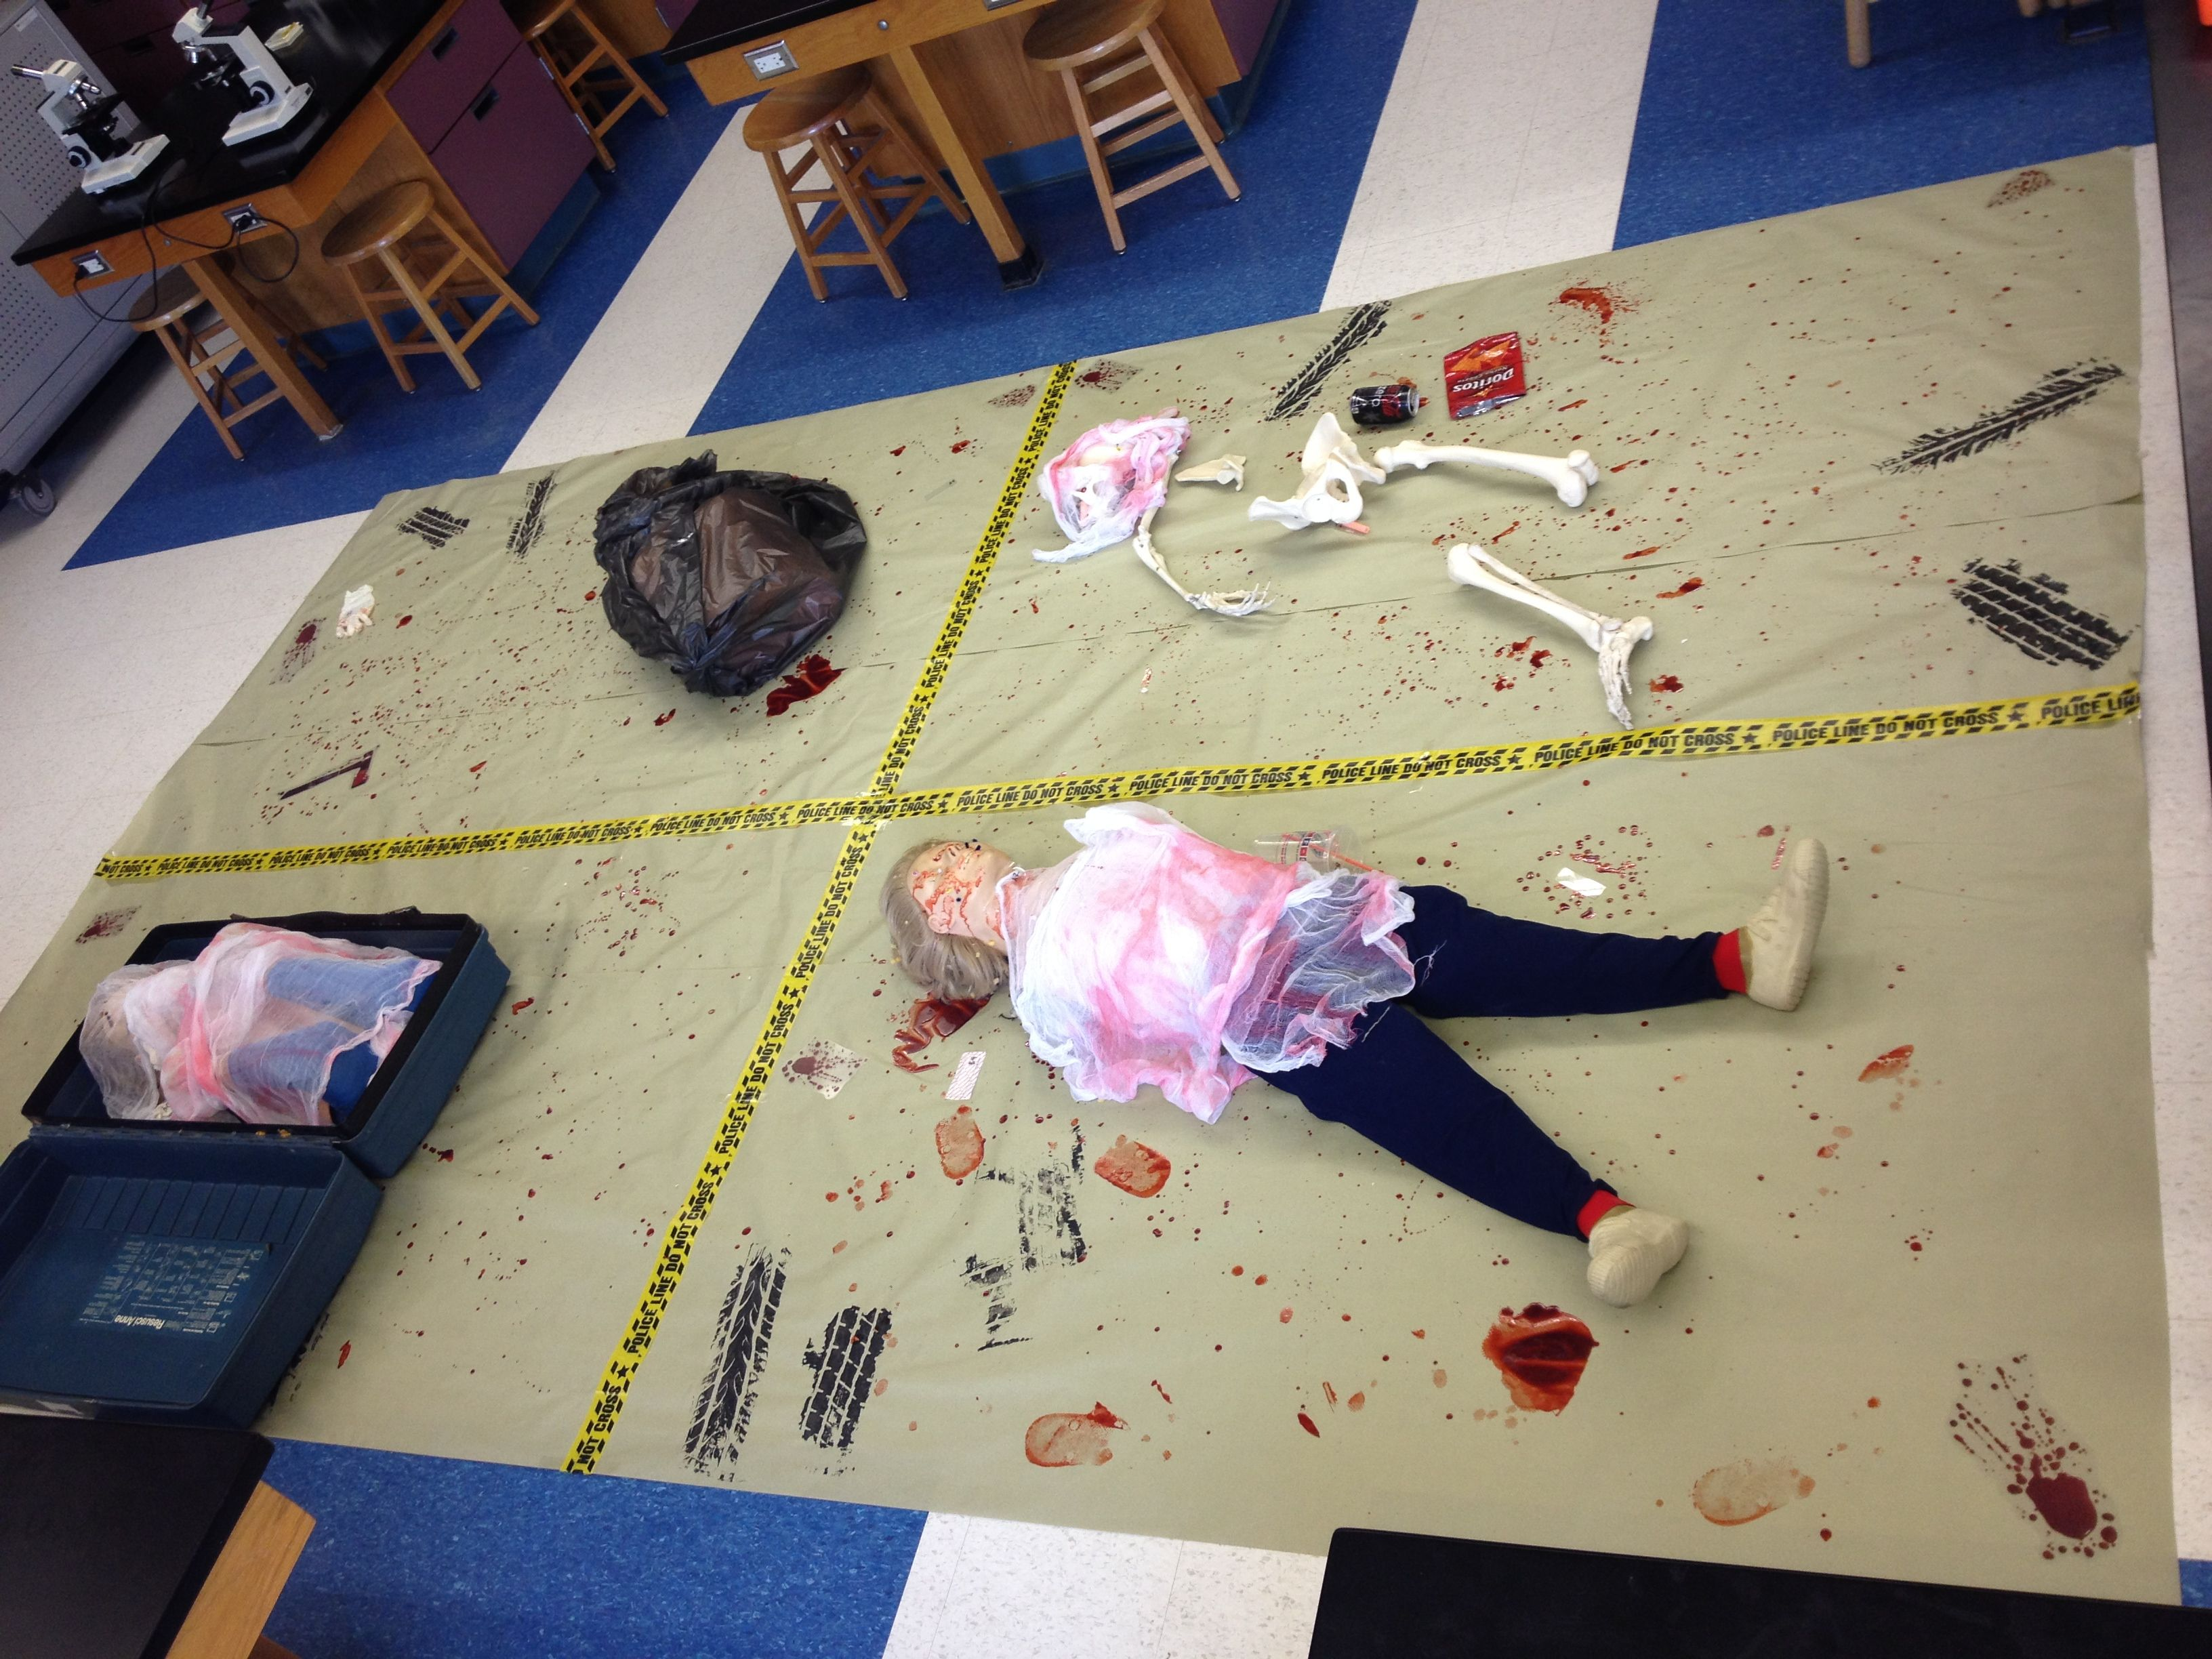 I Set Up 4 Crimes Scenes For Students Working In Teams To Analyze Each Had Various Pieces Of Eviden Forensic Science Forensics Elementary Engineering Projects